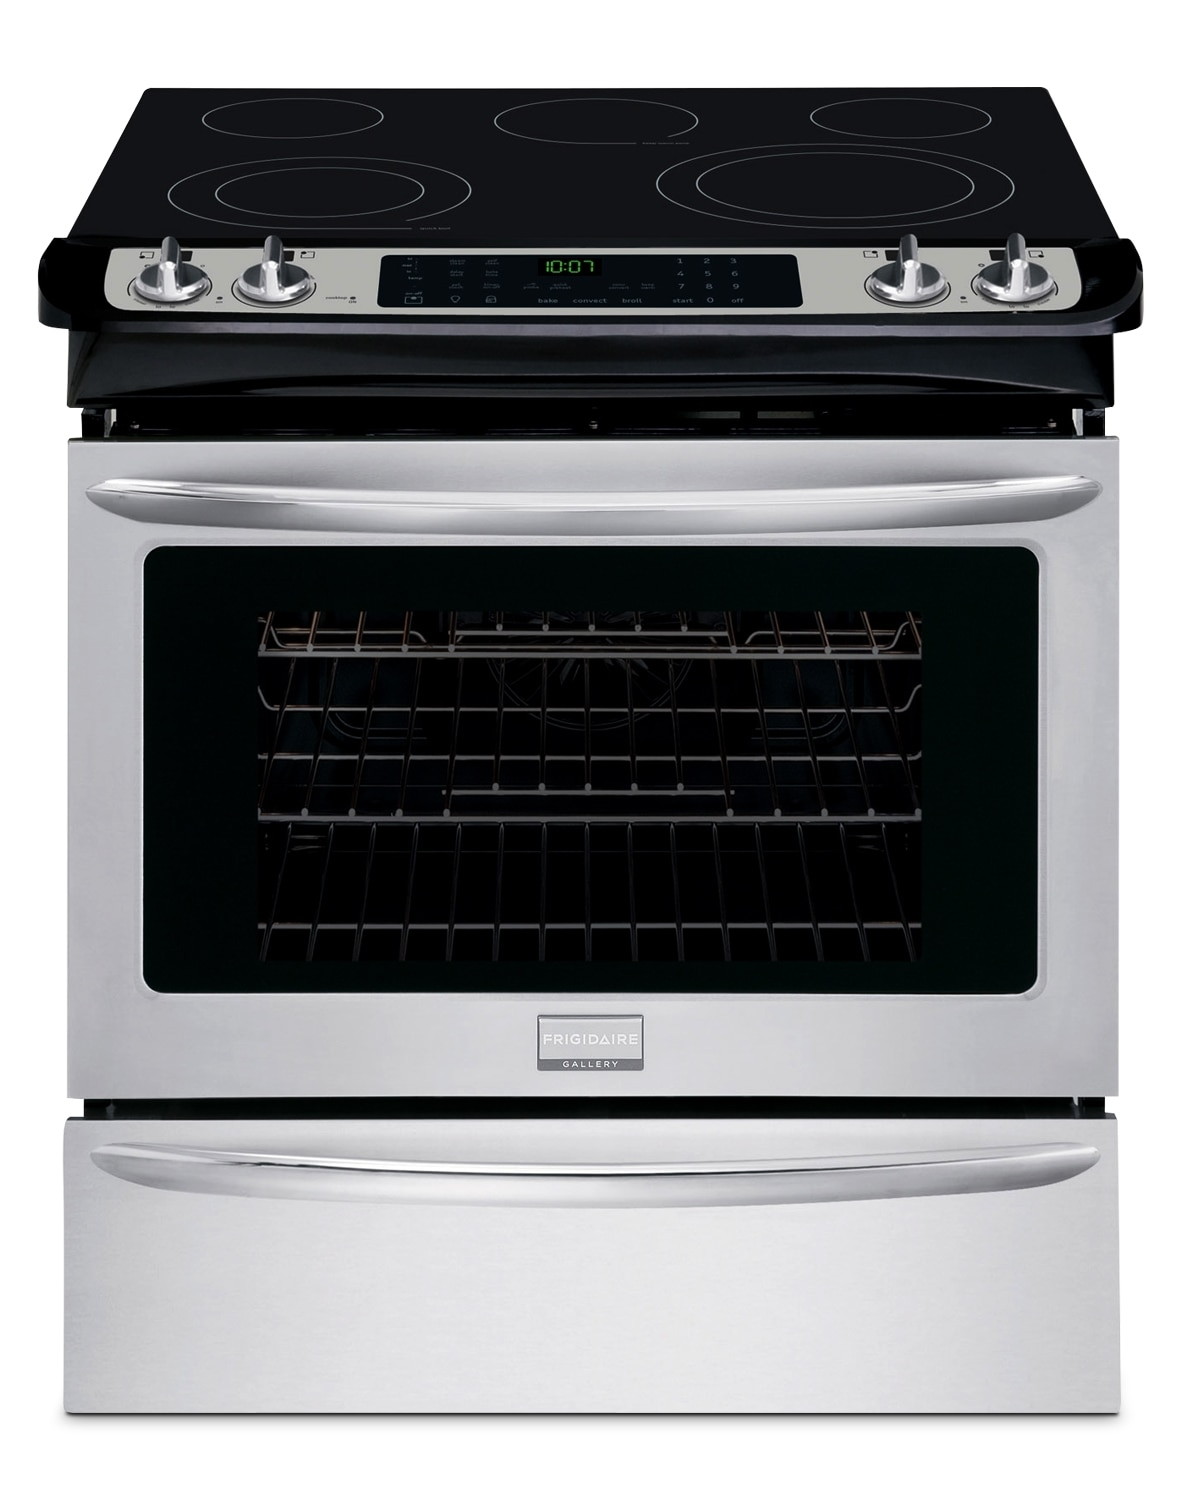 Frigidaire Stainless Steel Slide-In Electric Range (4.6 Cu. Ft.) - 1606866